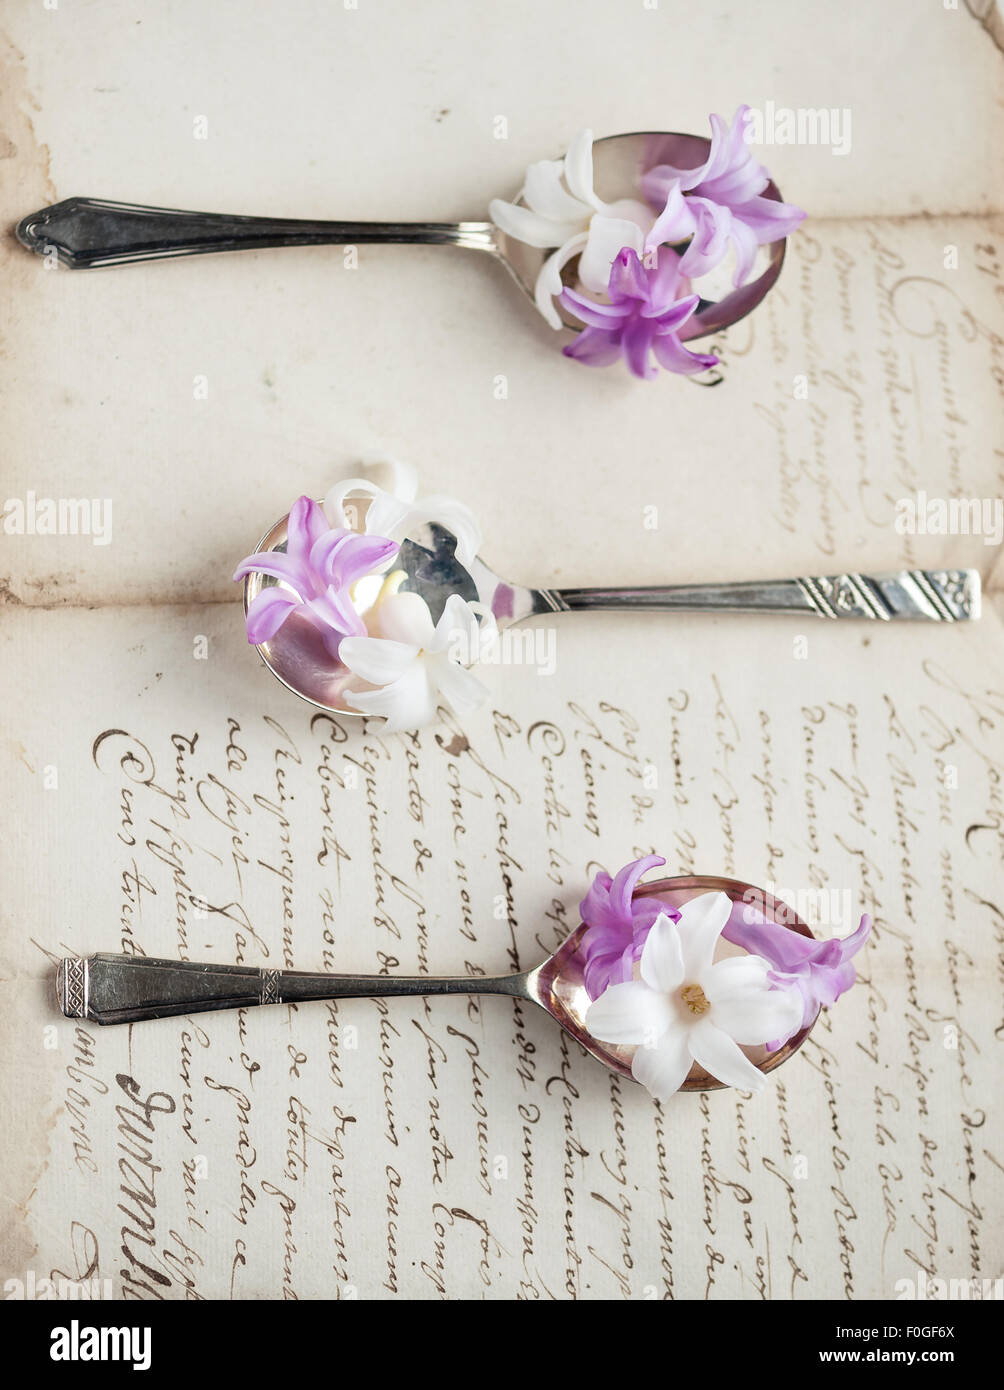 hyacinths on vintage silver spoons on old letter - Stock Image